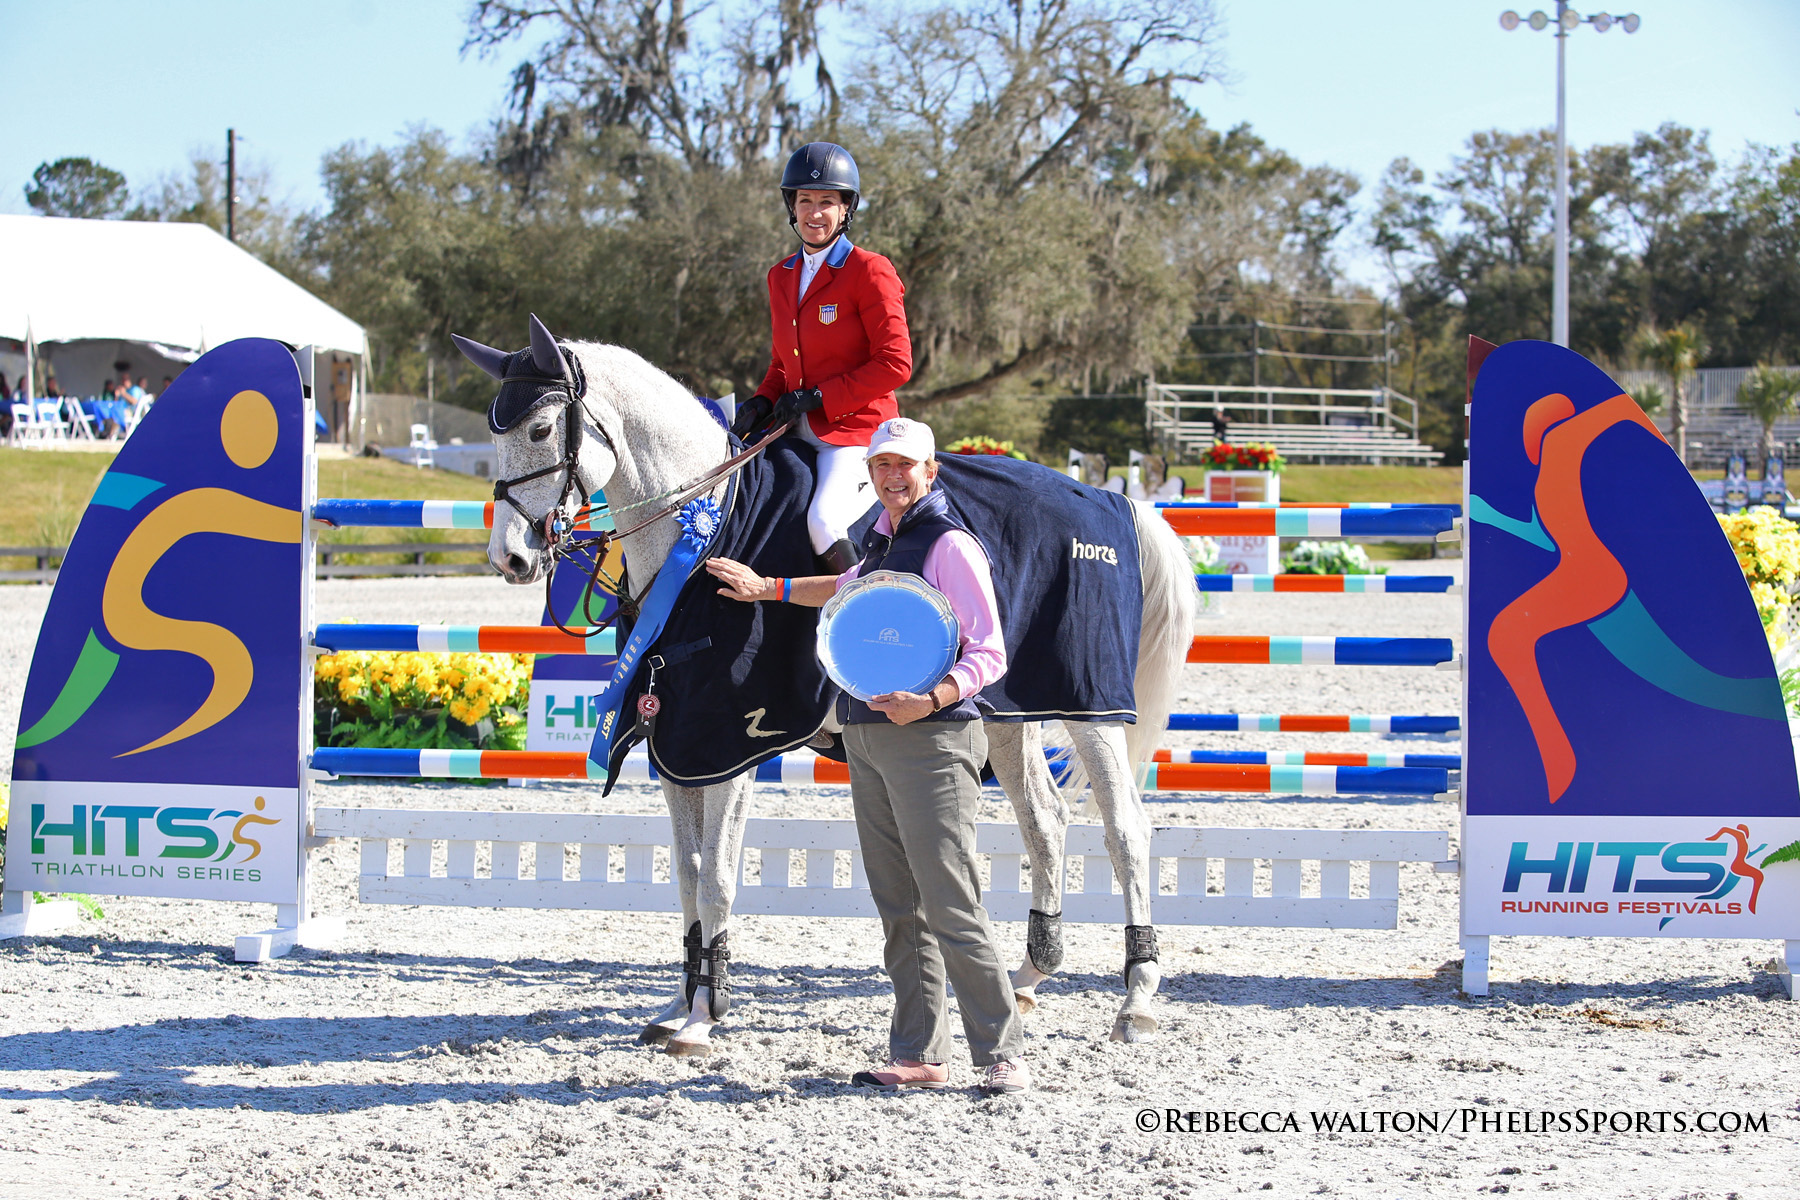 Winners of the $150,000 Ocala Grand Prix, Laura Kraut and Cedric, with owner Margaret Duprey. (Photo Credit: Rebecca Walton)